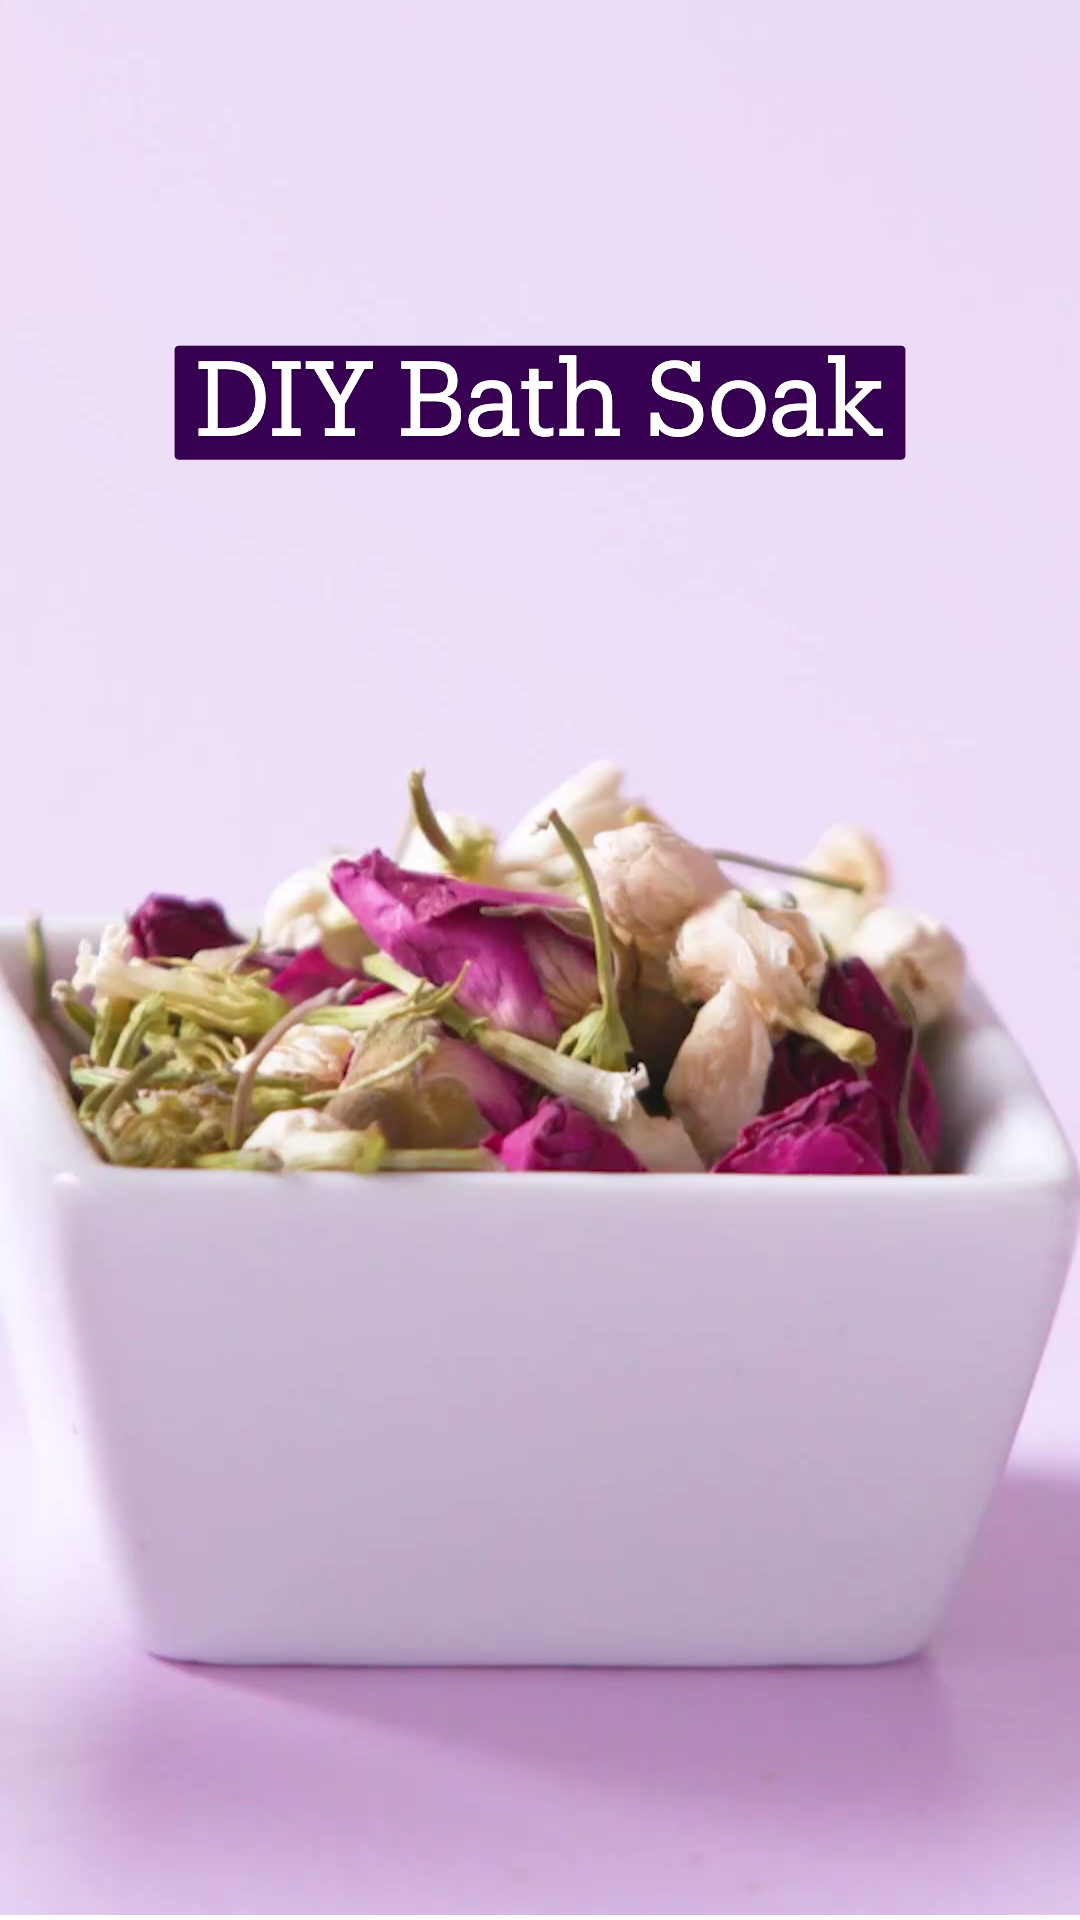 DIY Bath Soak